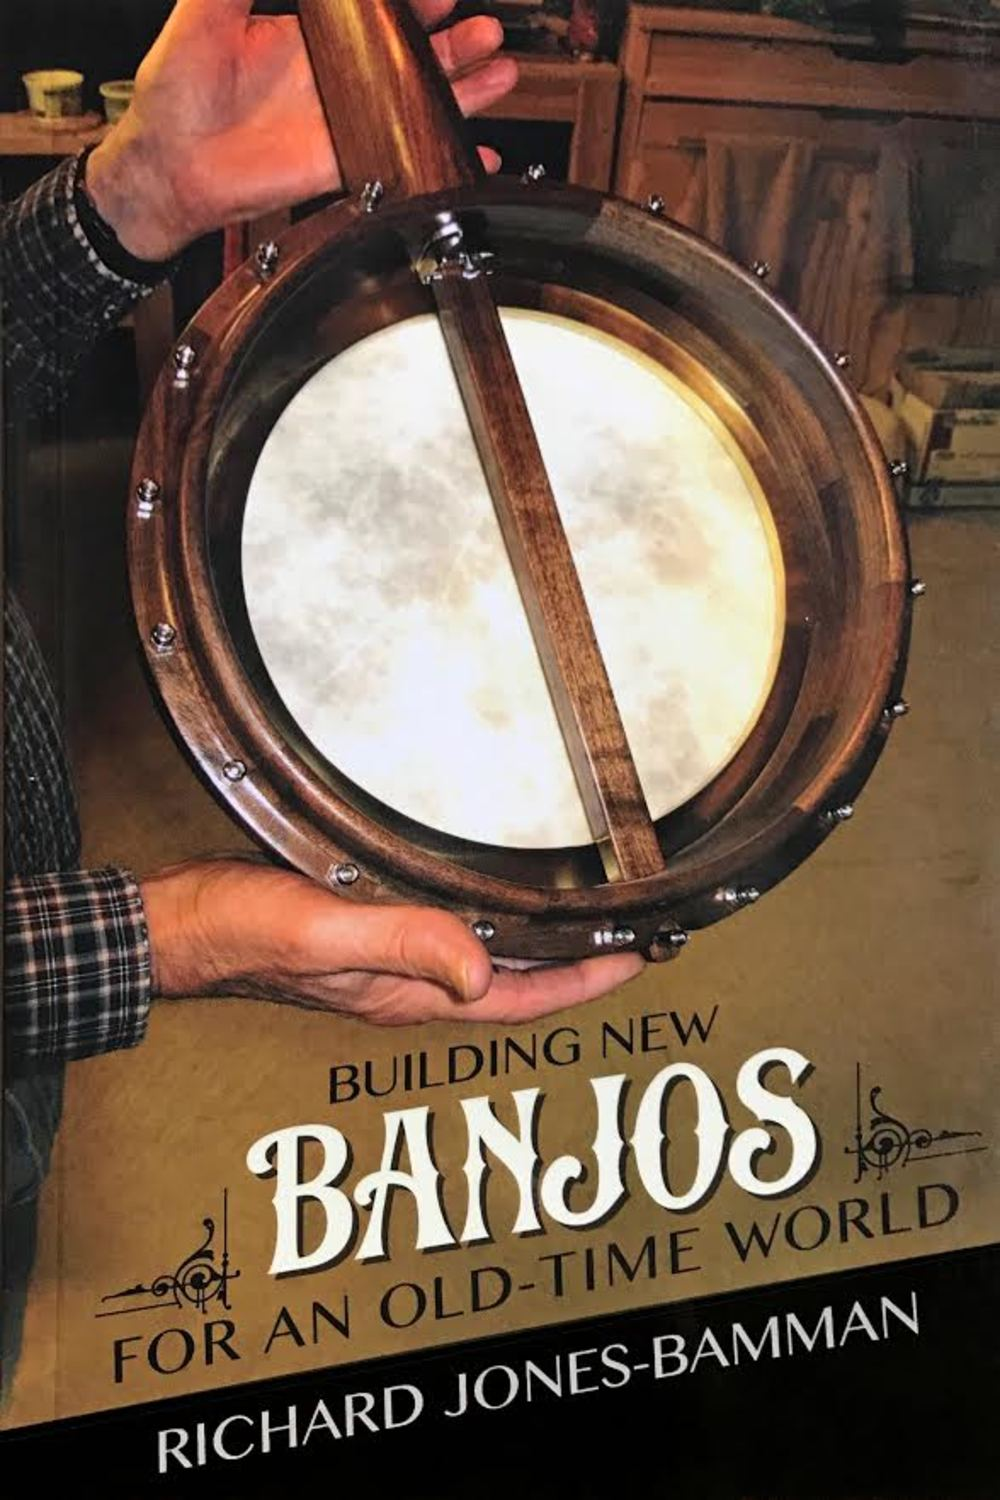 Building New Banjos for an Old Time World